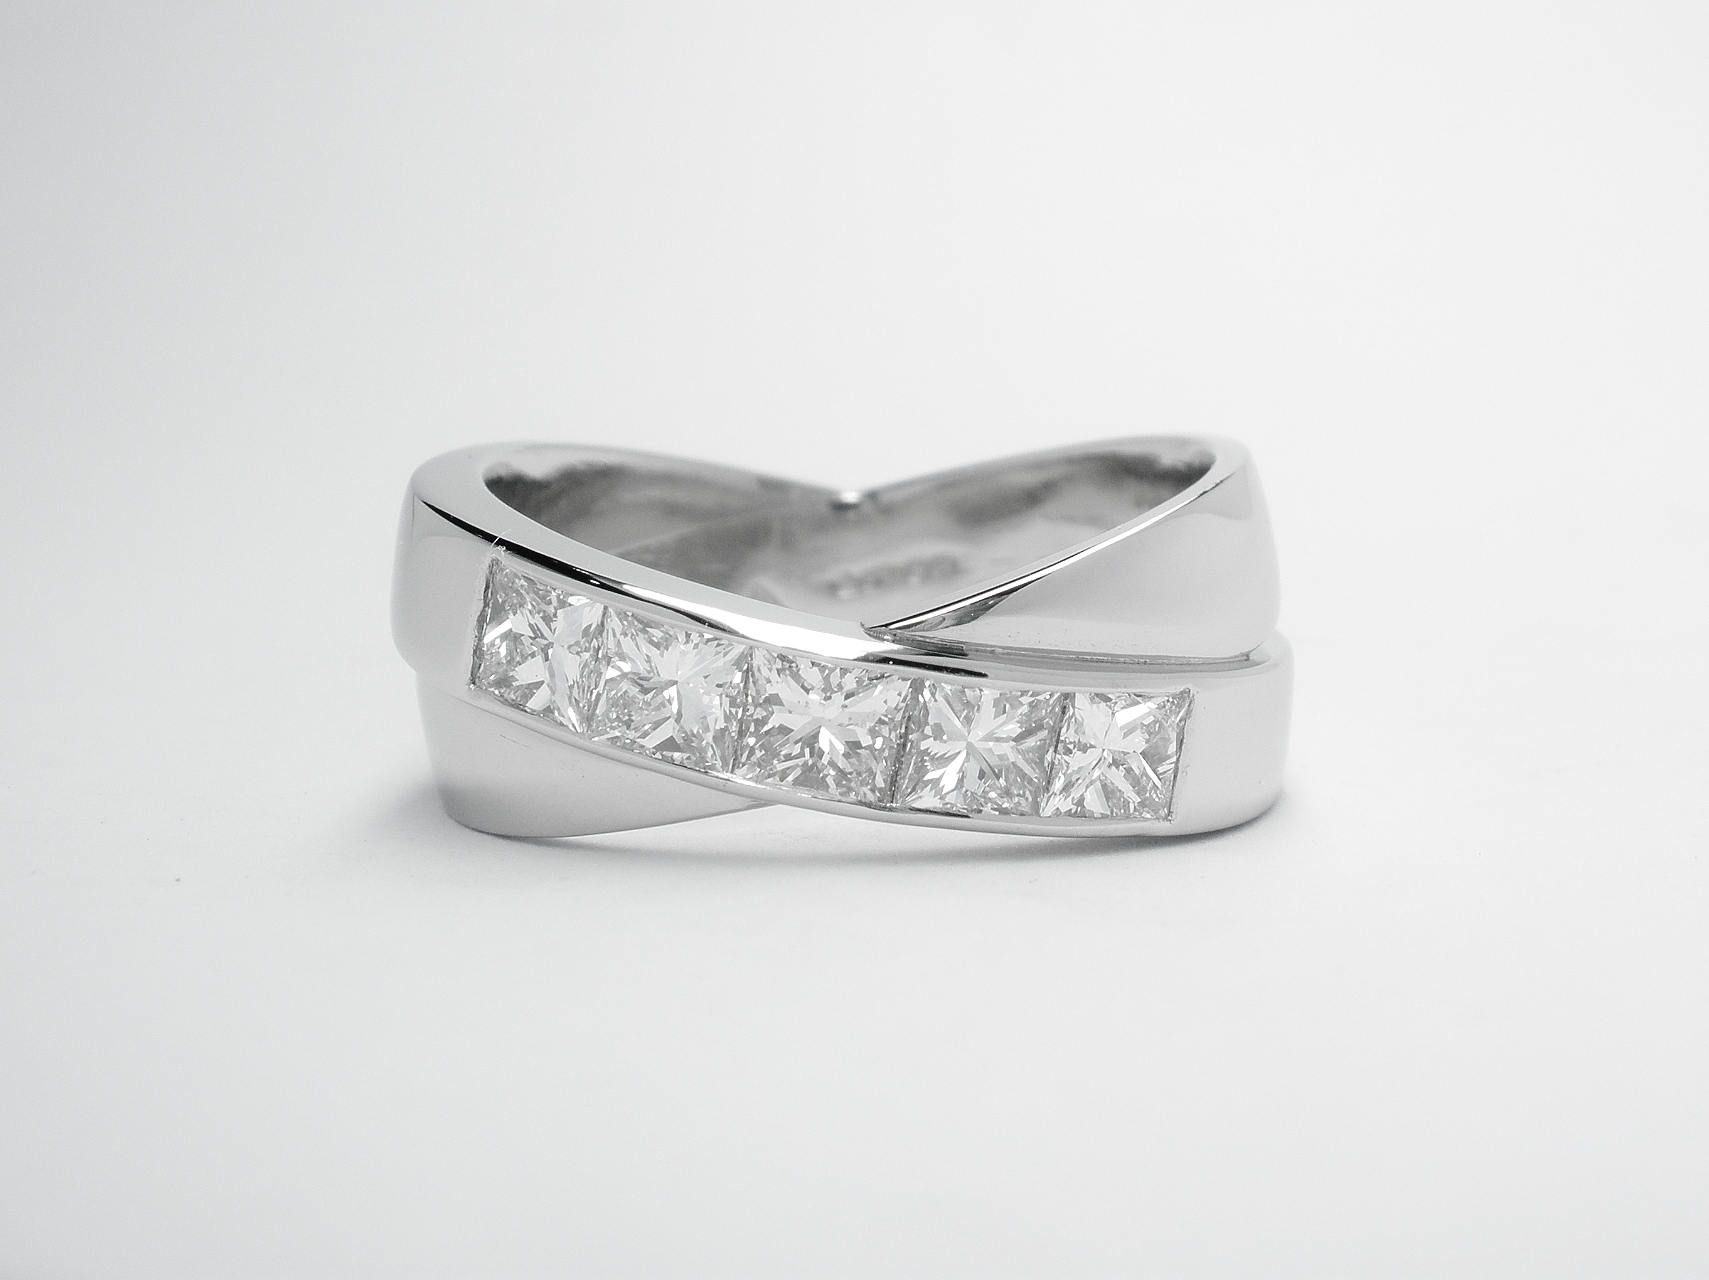 A 5 stone channel set princess cut diamond 'X' style ring mounted in platinum.